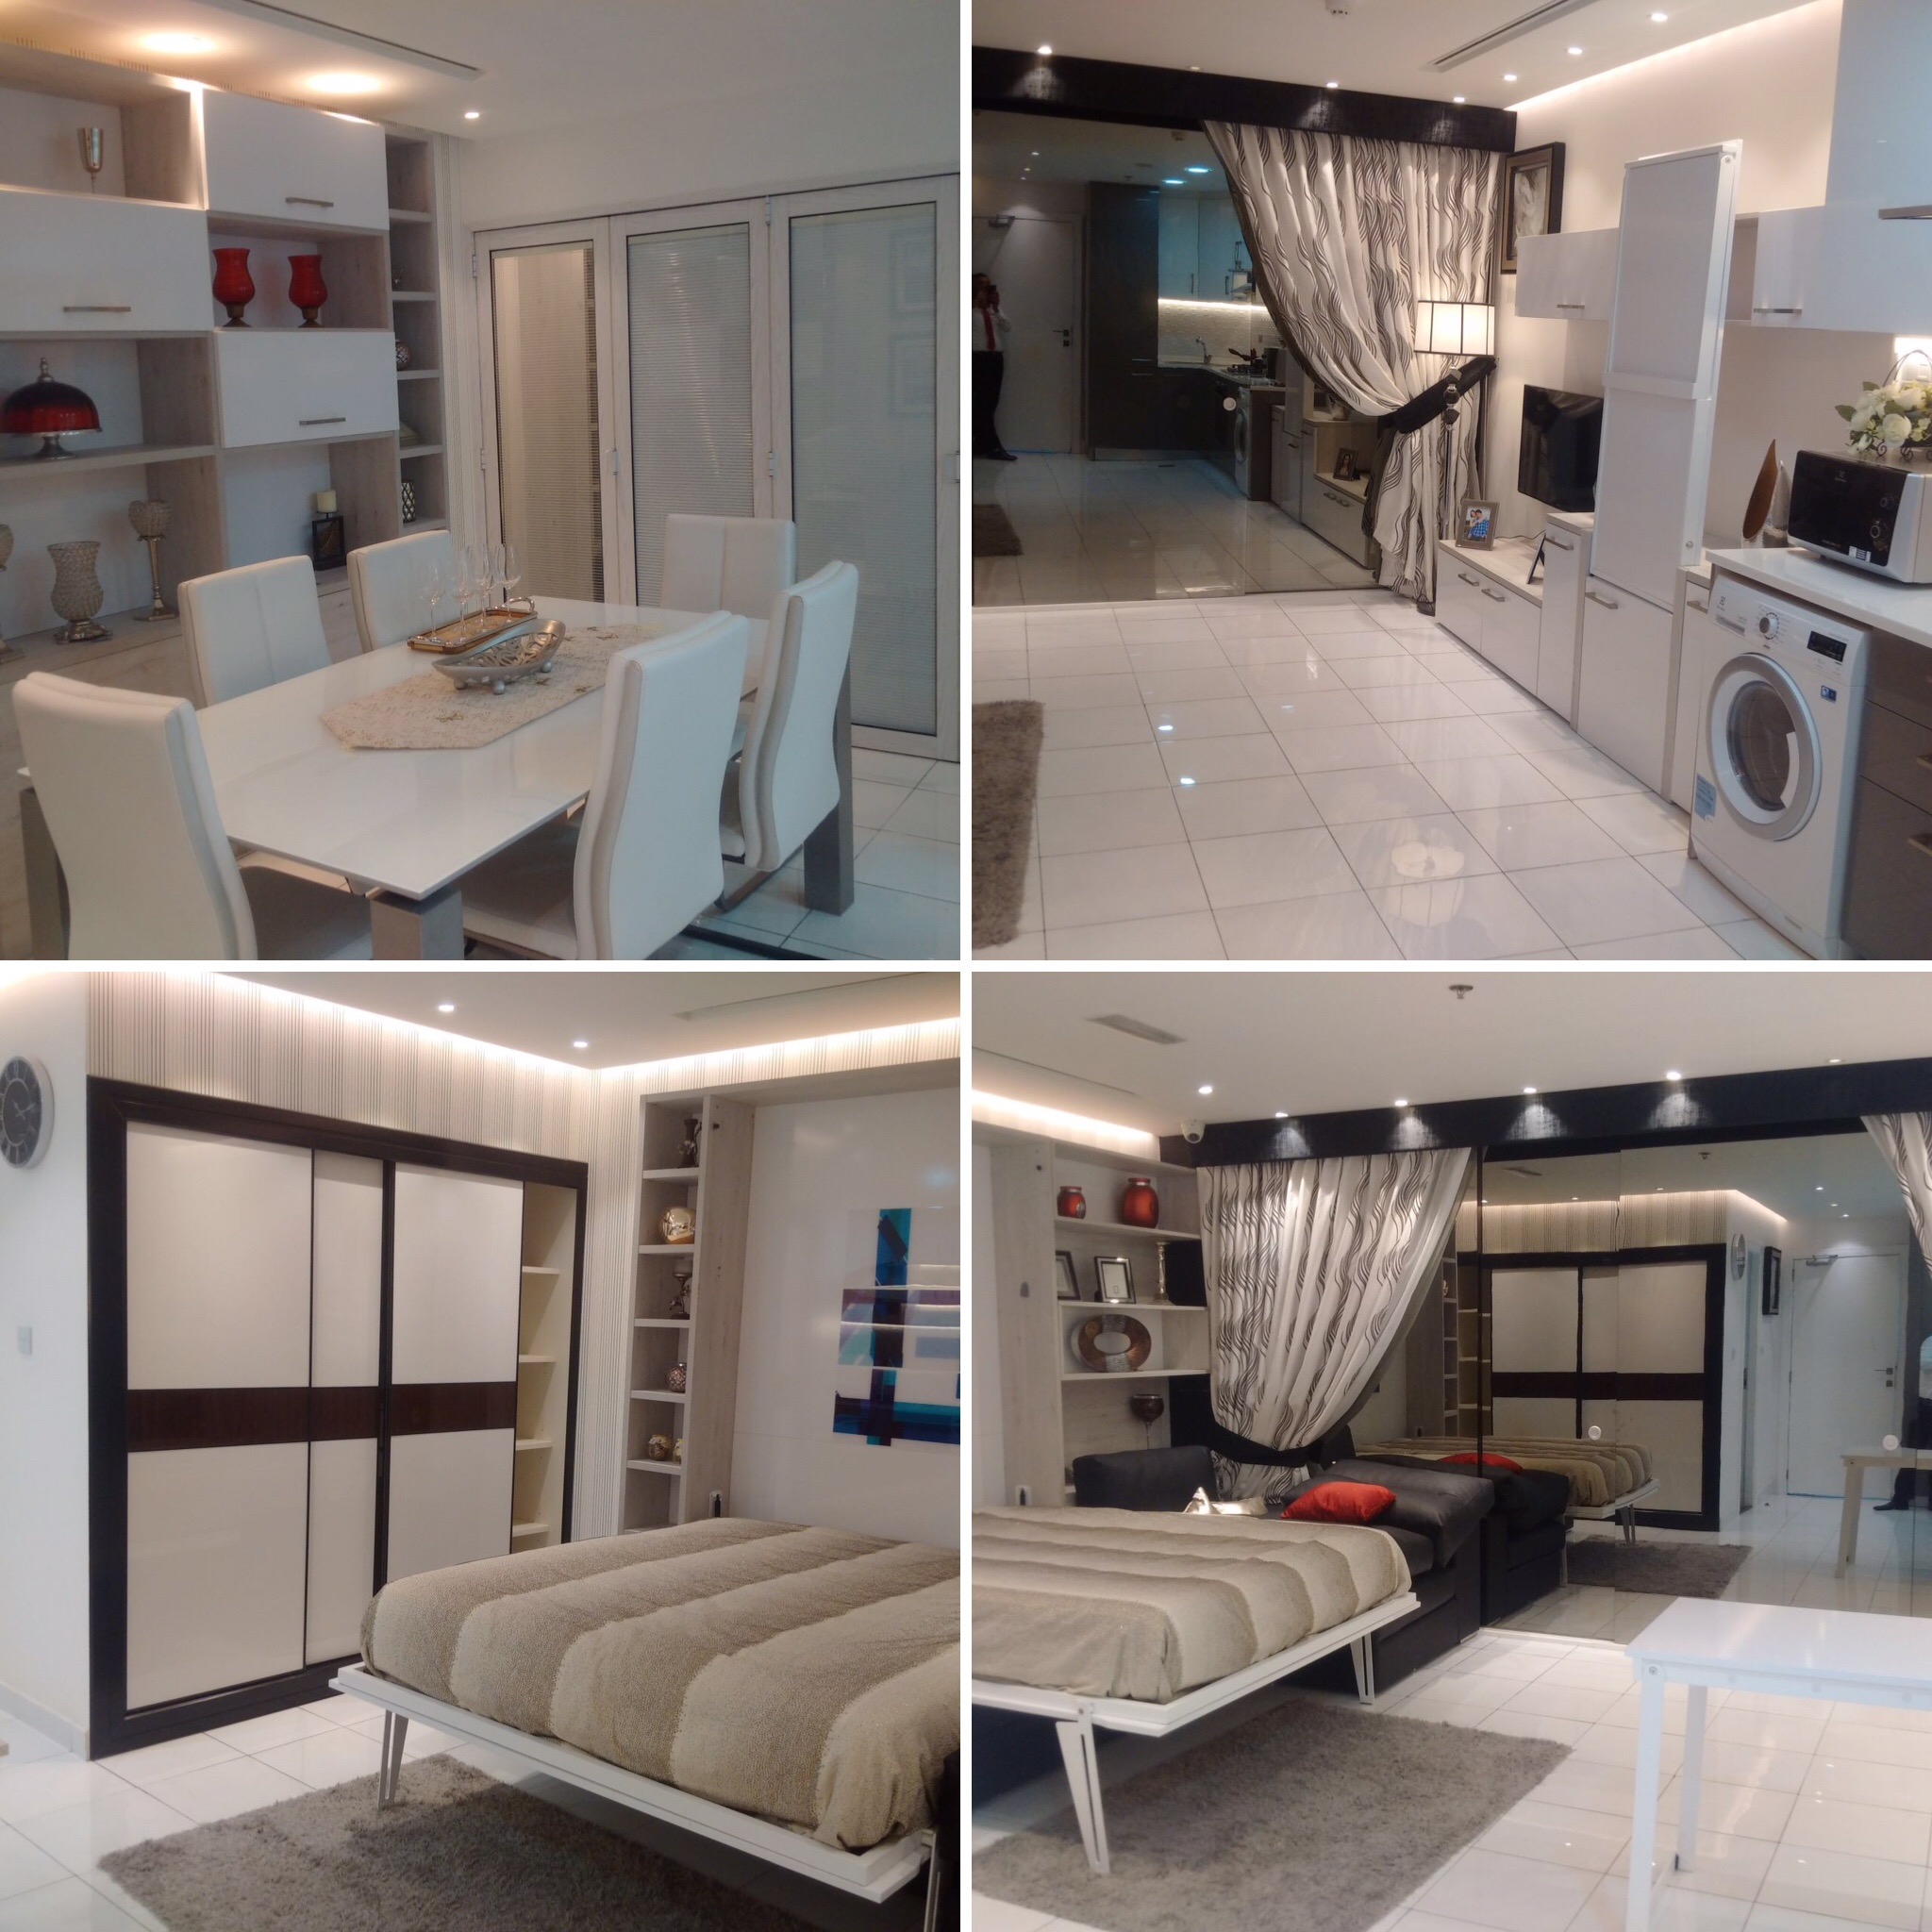 Apartments For Sale: Apartments For Sale In GLAMZ By Danube At Al Furjan, Dubai